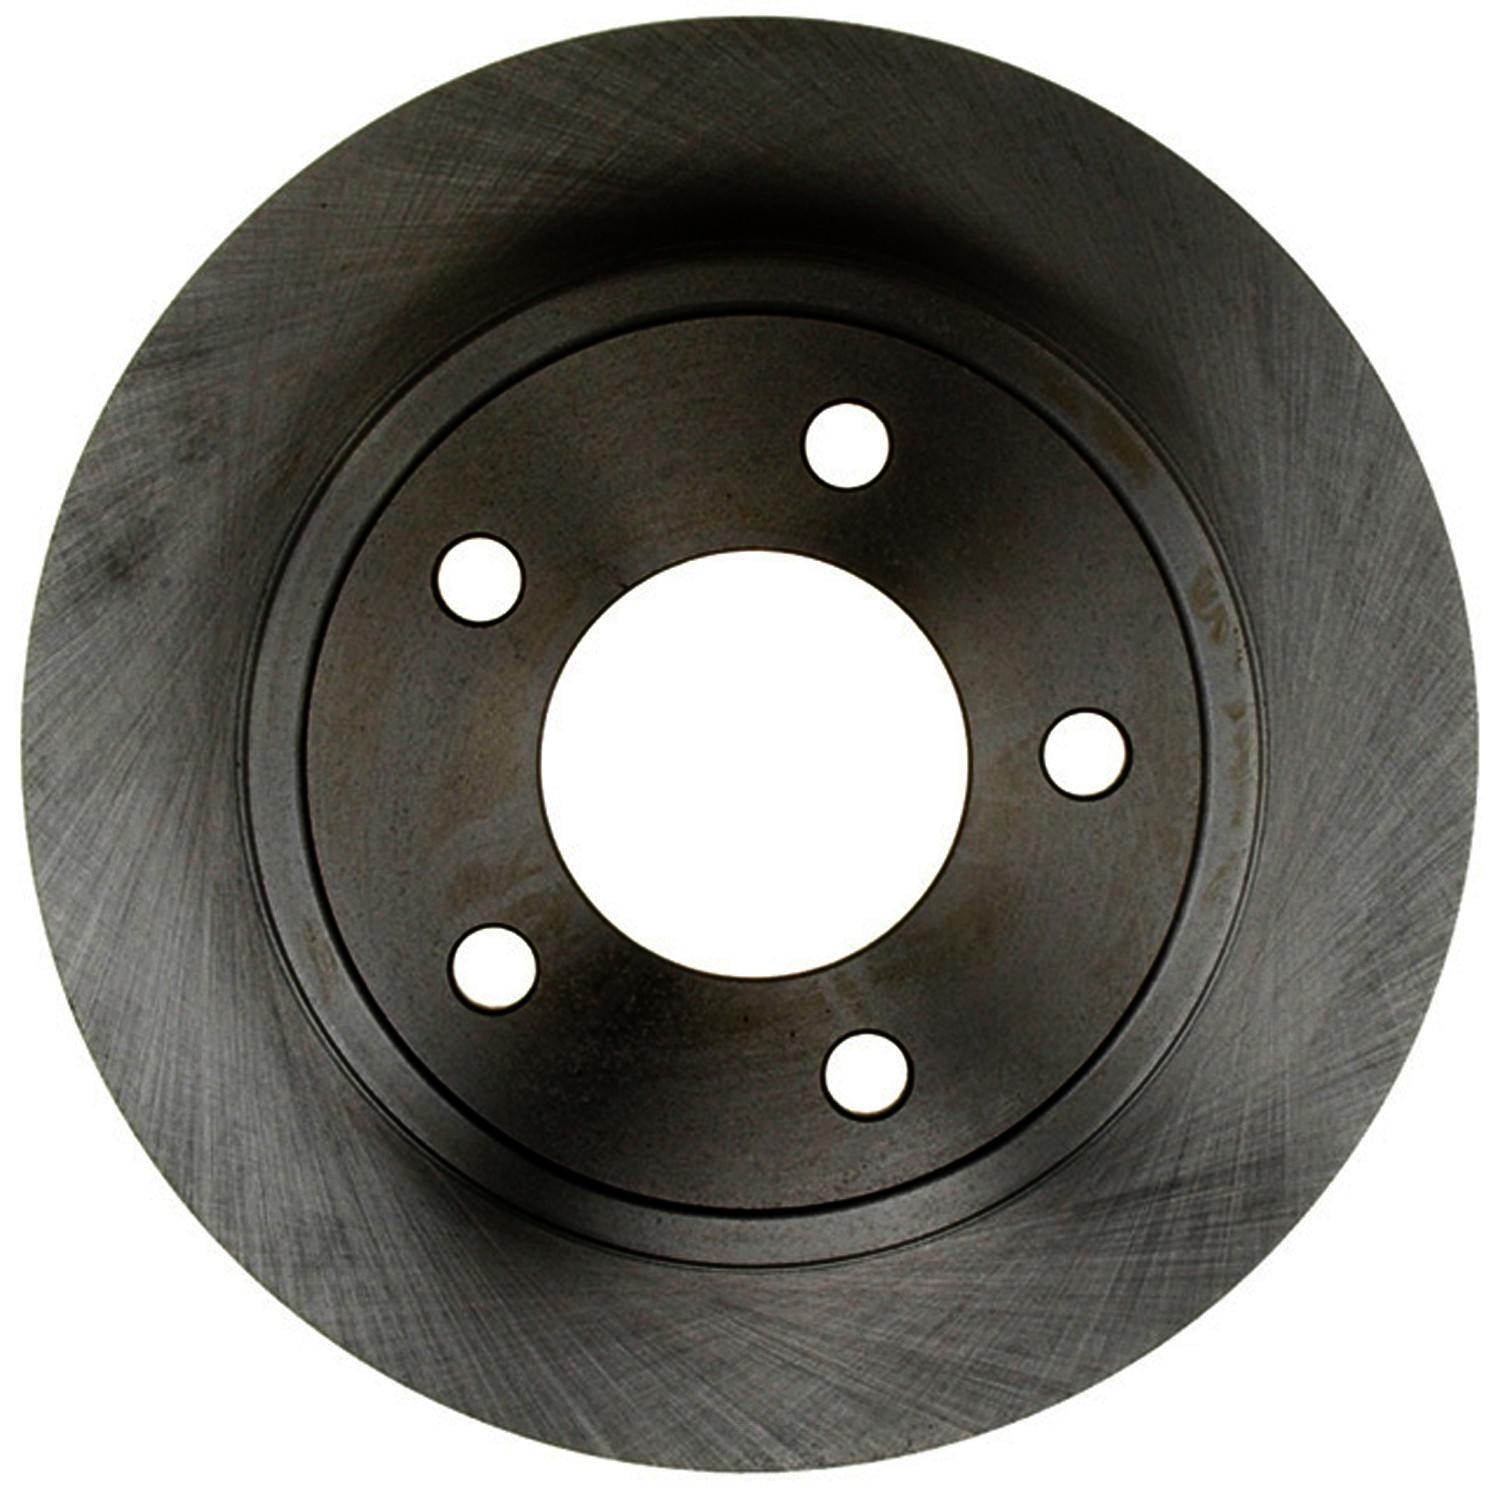 ACDELCO ADVANTAGE - Non-Coated Disc Brake Rotor - DCD 18A550A